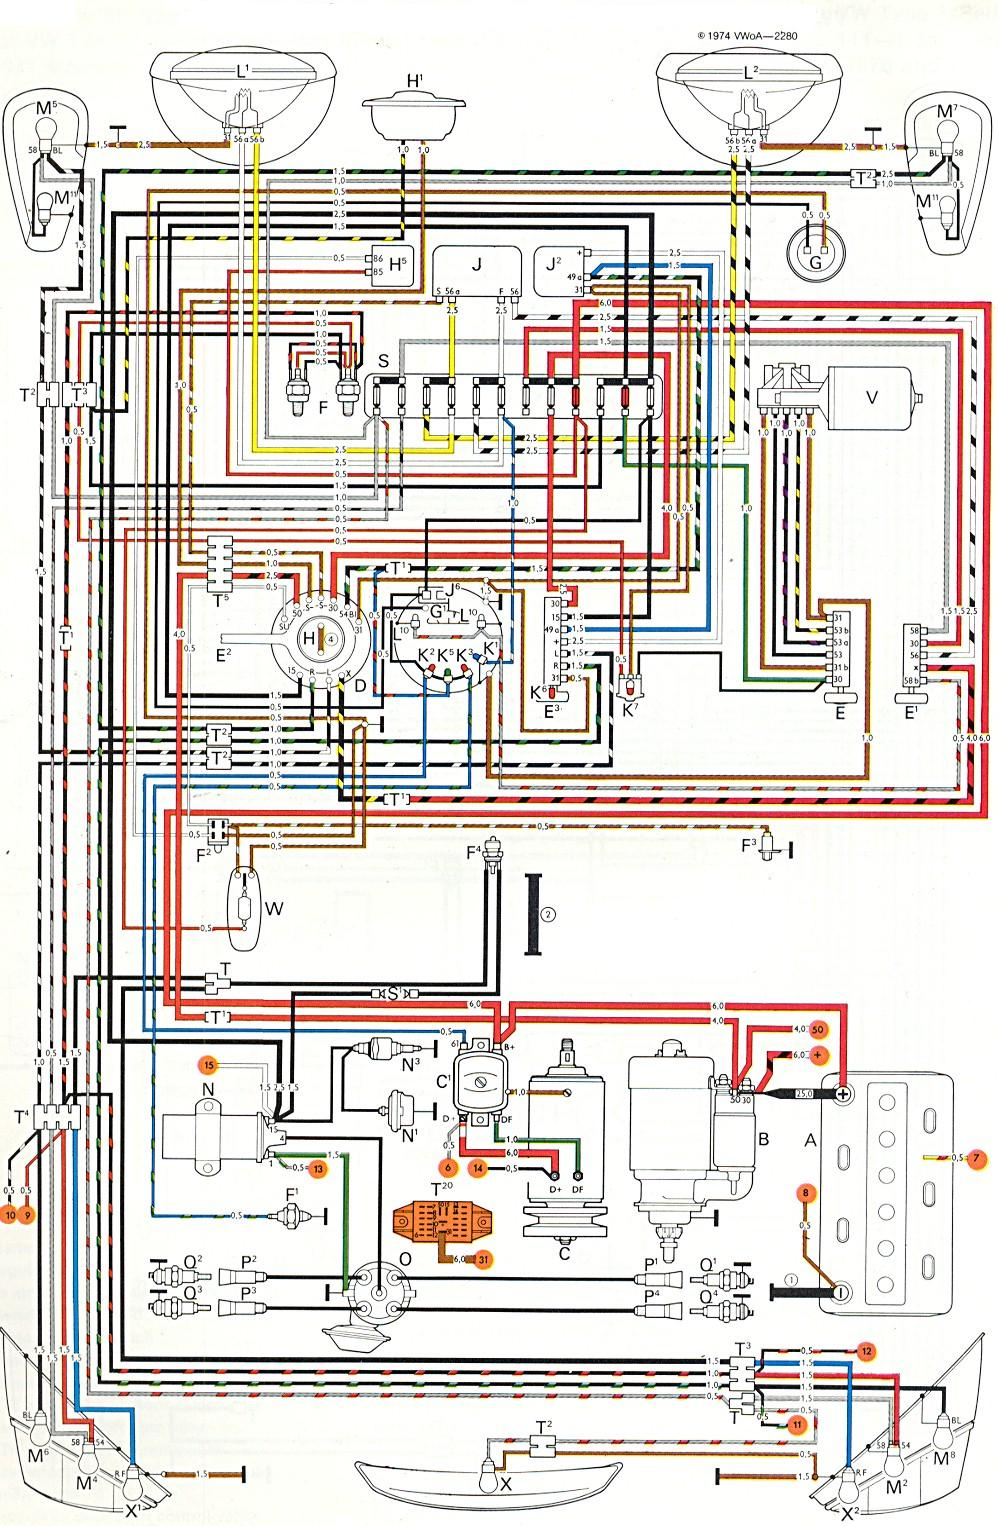 hight resolution of 72 vw wiring diagram wiring diagram third level volkswagen super beetle wiring diagram 4 best images of 72 vw beetle wiring diagram